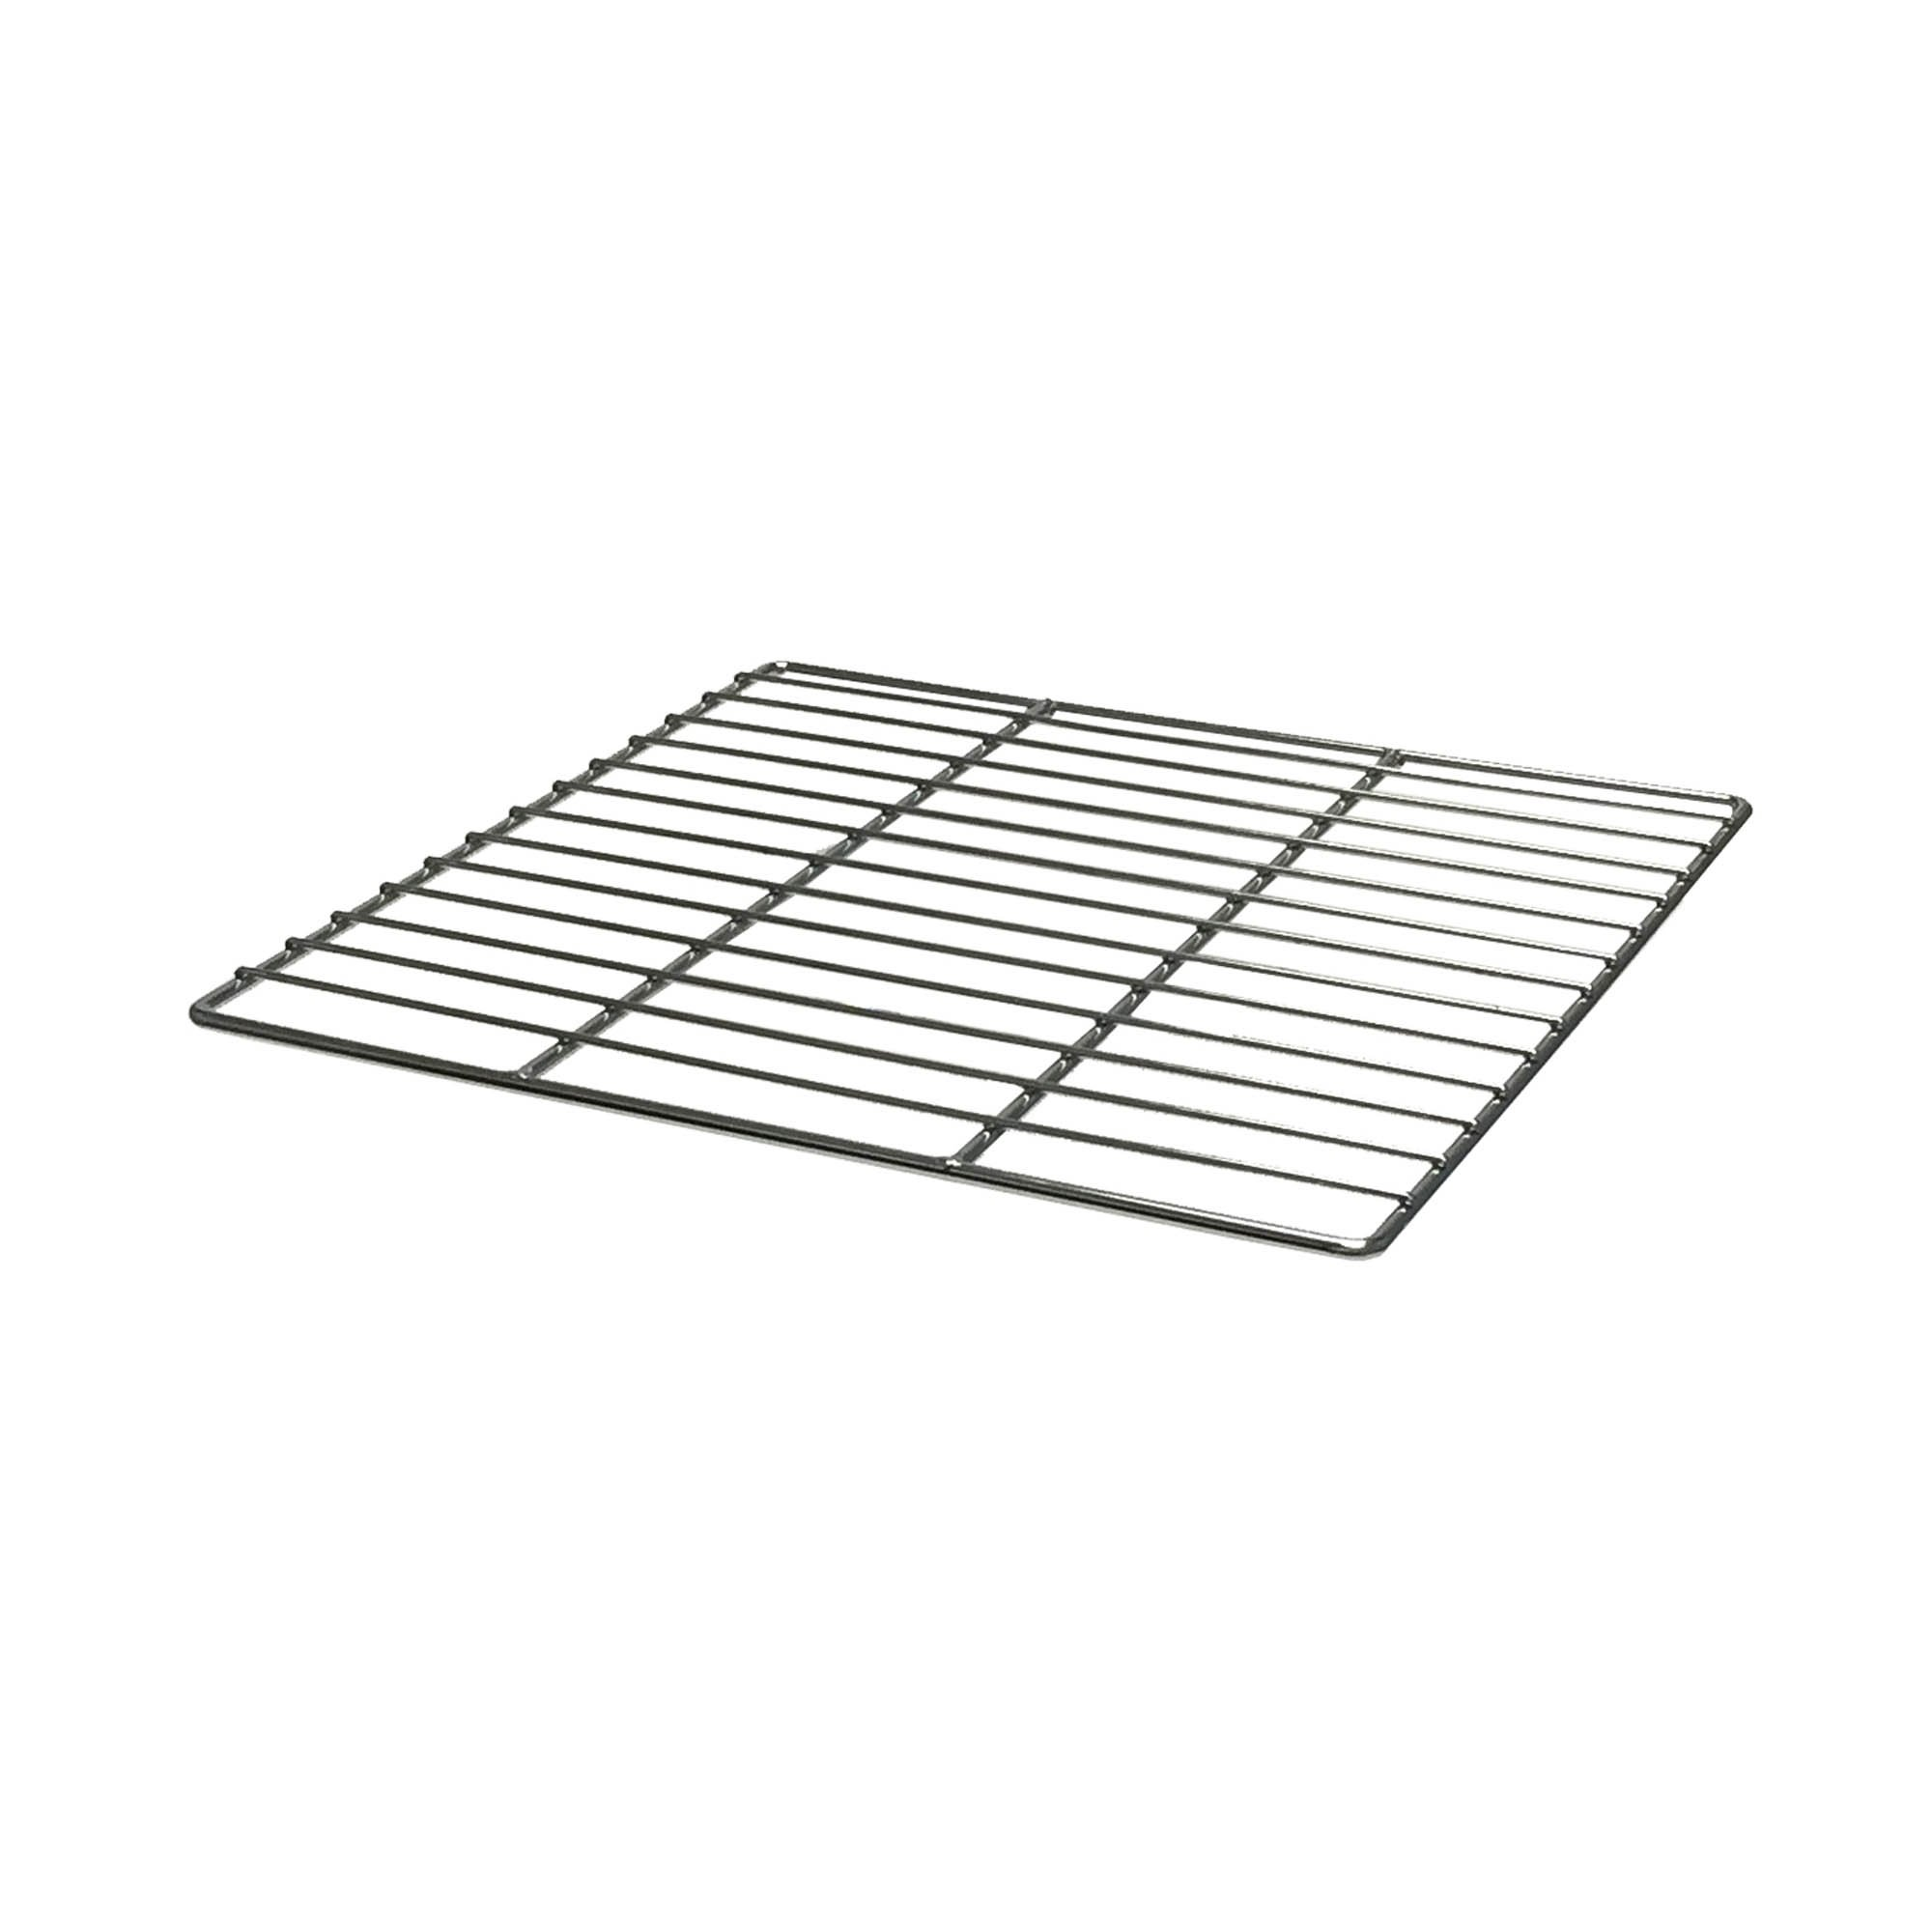 Extra Shelf, stainless steel for H2505-130